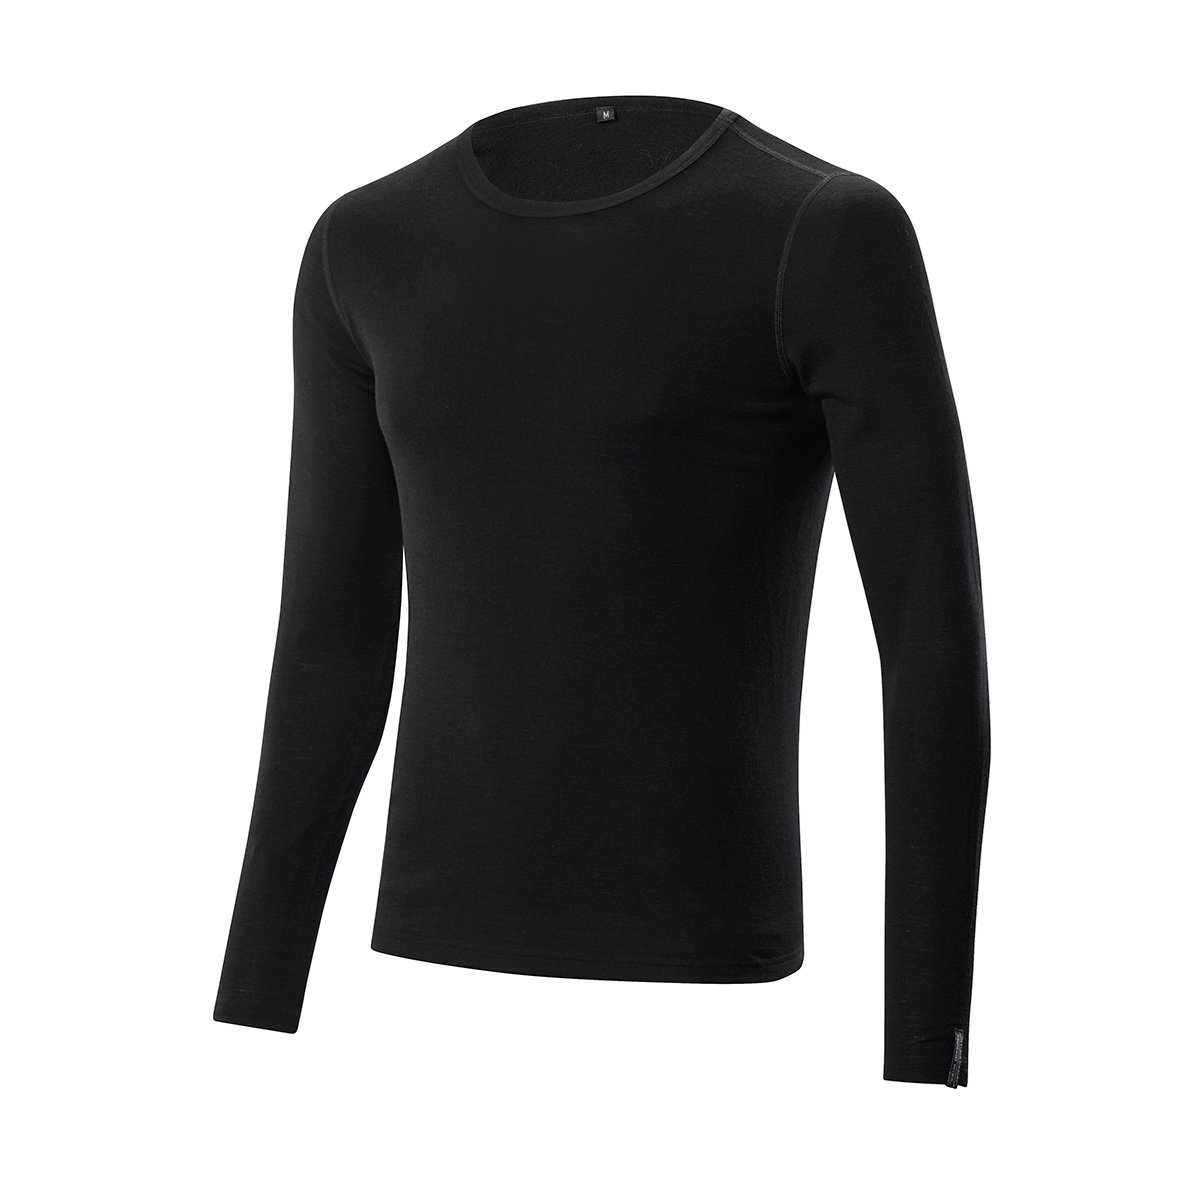 Altura Merino Long Sleeve Base